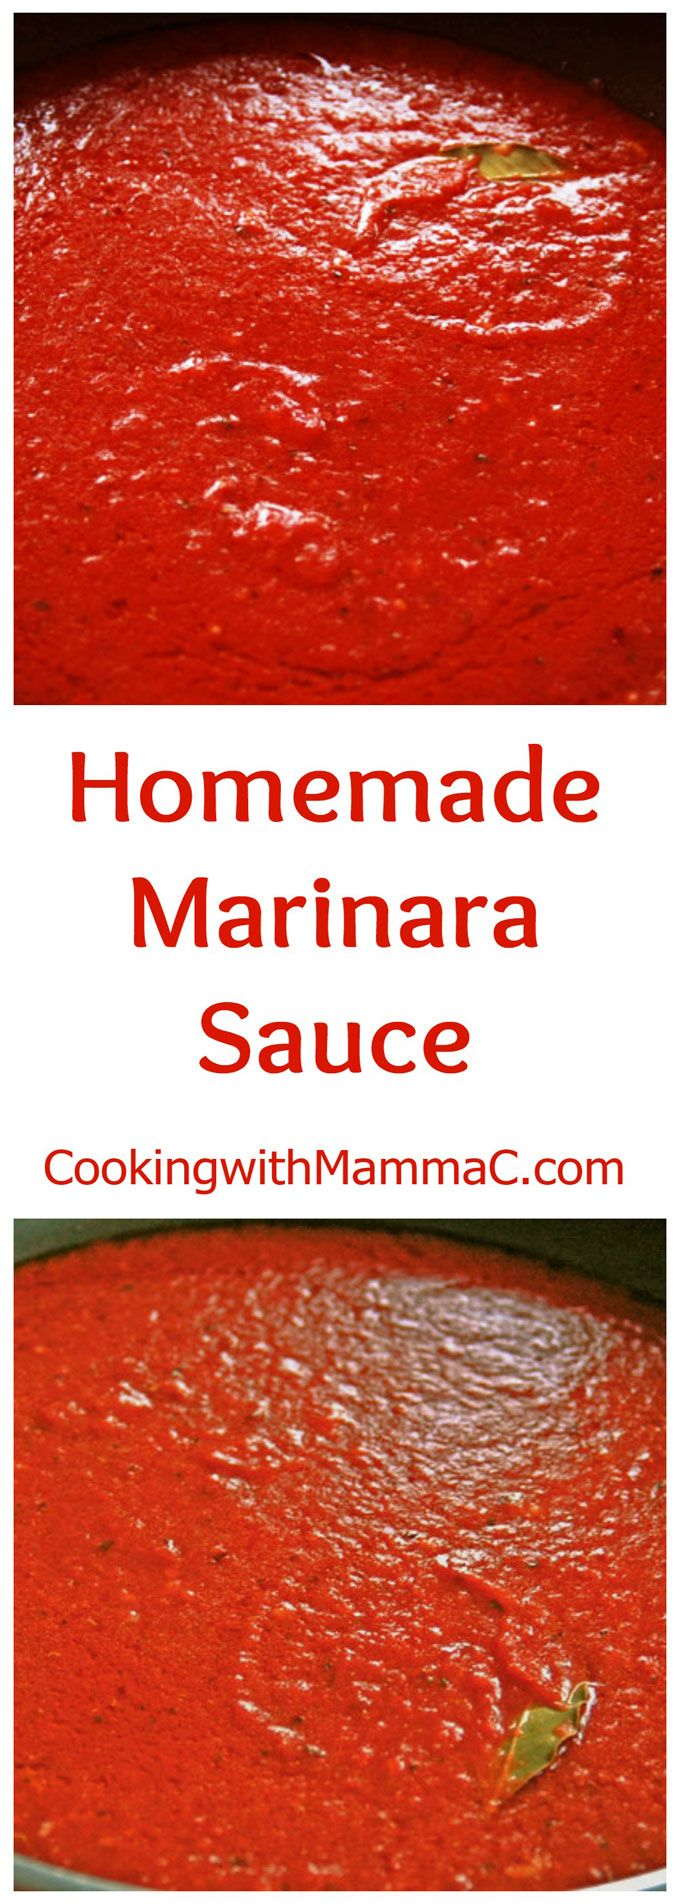 Homemade Marinara Sauce - My go-to recipe for authentic homemade Italian pasta sauce with no added sugar! So quick and easy! Vegan and gluten free.